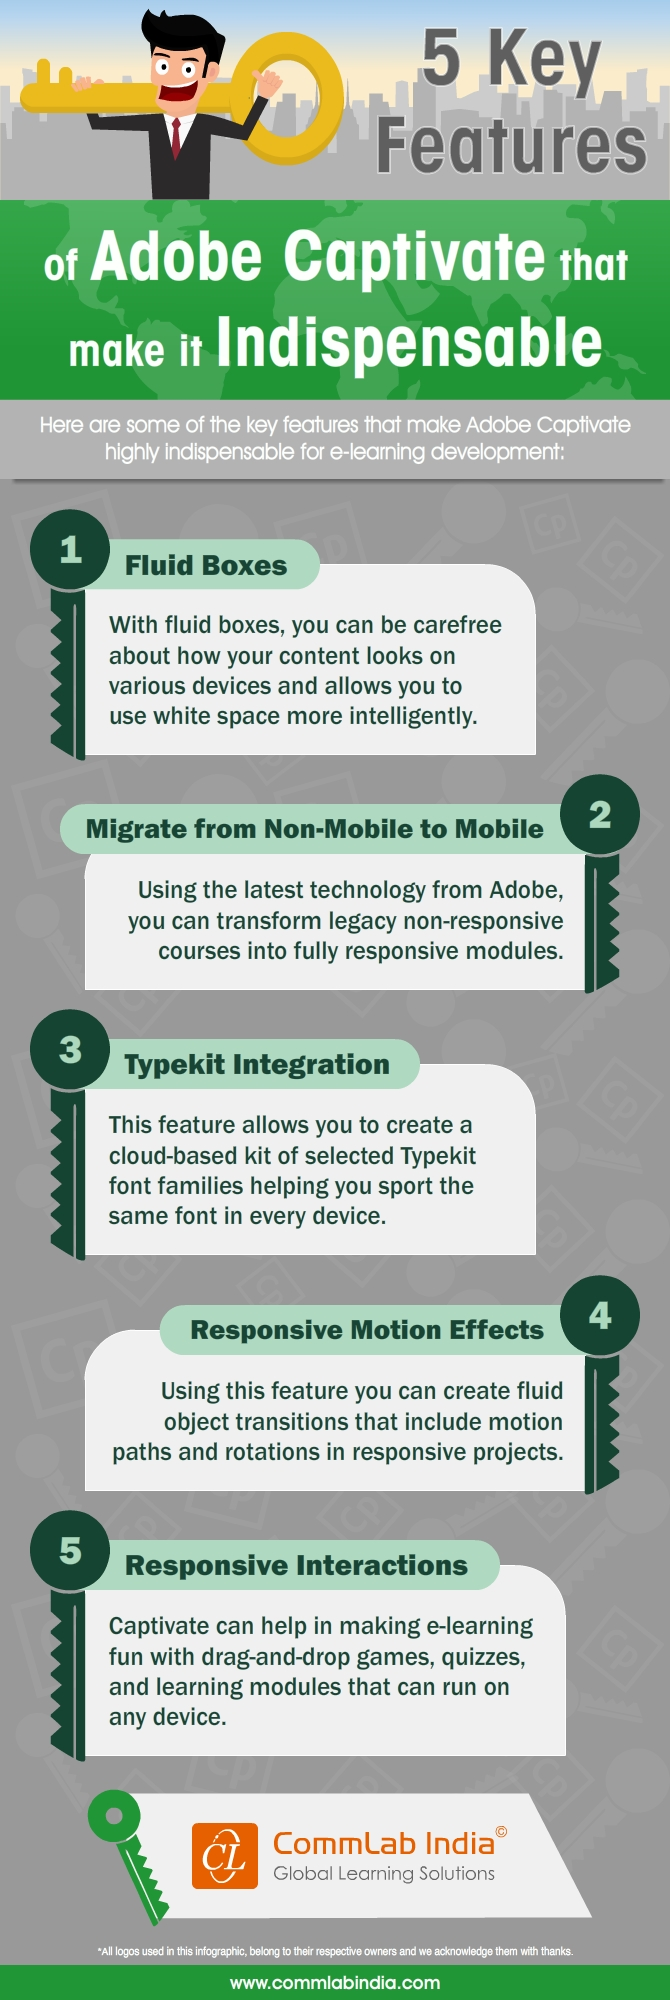 5 Key Features of Adobe Captivate that Make It Indispensable [Infographic]